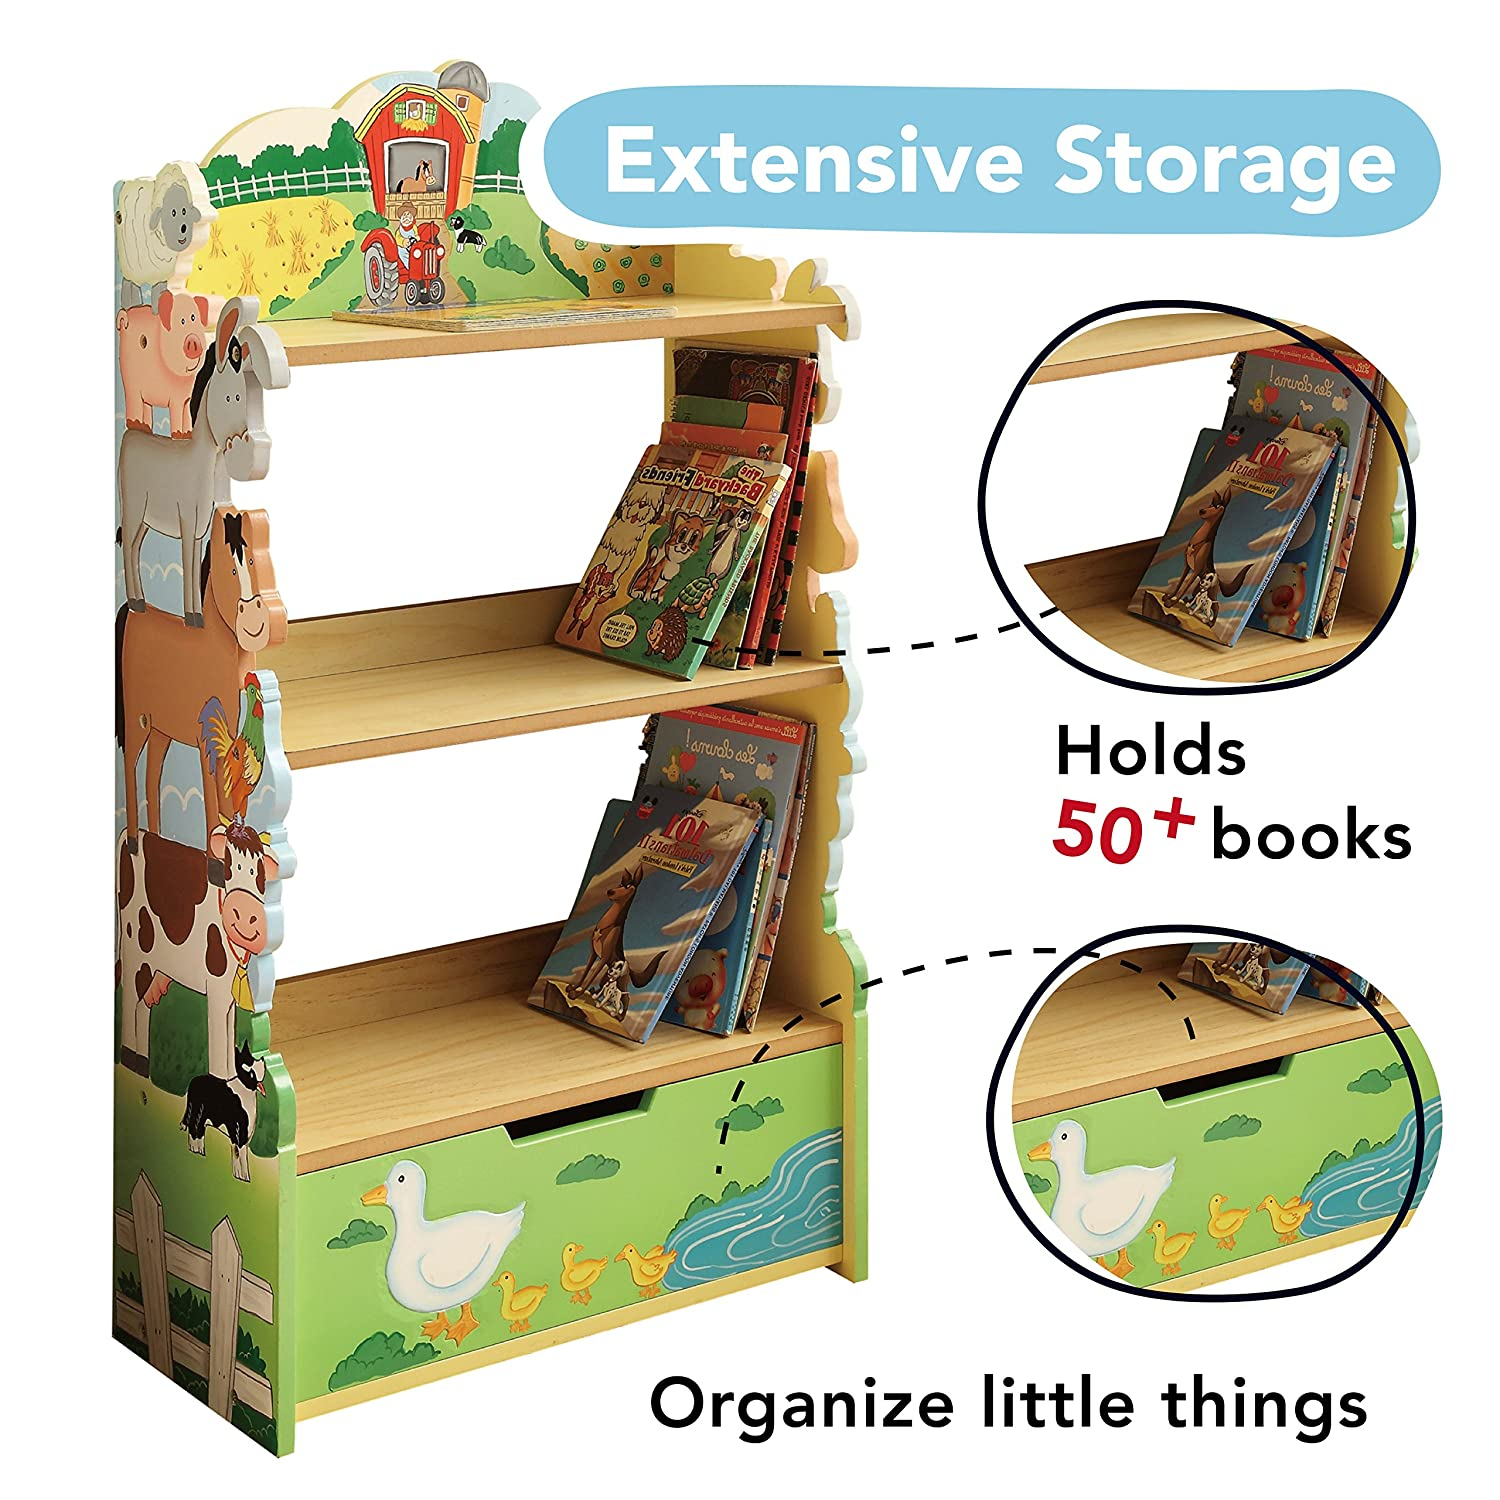 Lead Free Water-based Paint Transportation Thematic Kids Wooden Bookcase with Storage Non-Toxic Fantasy Fields Imagination Inspiring Hand Crafted /& Hand Painted Details